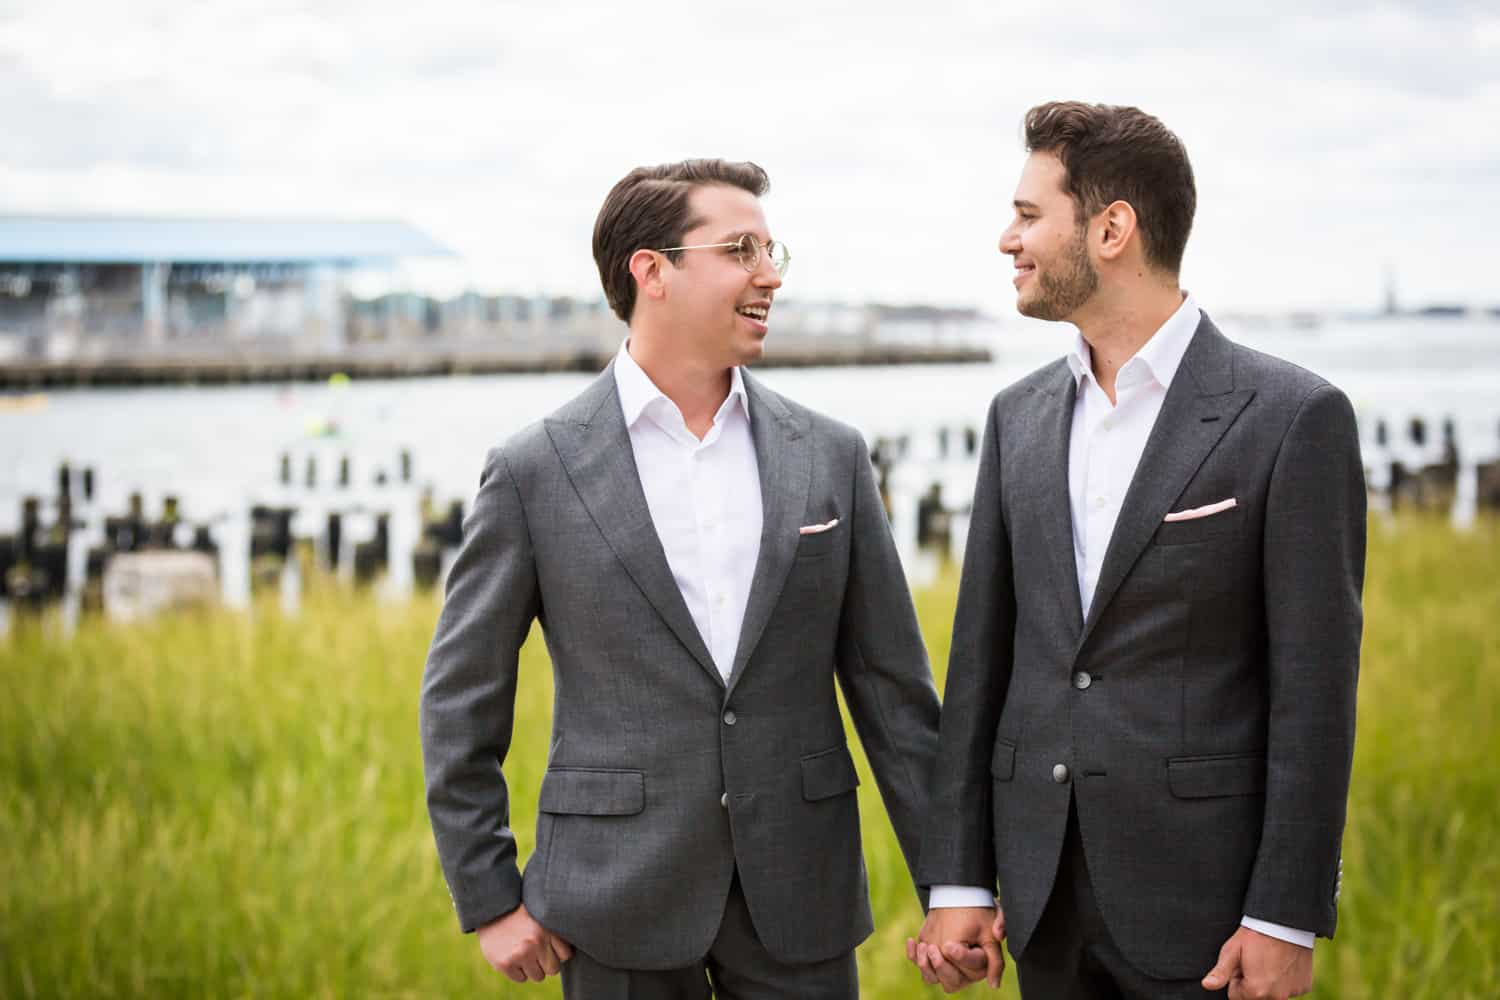 Greenpoint Loft wedding photos of two grooms holding hands in Brooklyn Bridge Park in front of Park Poles View